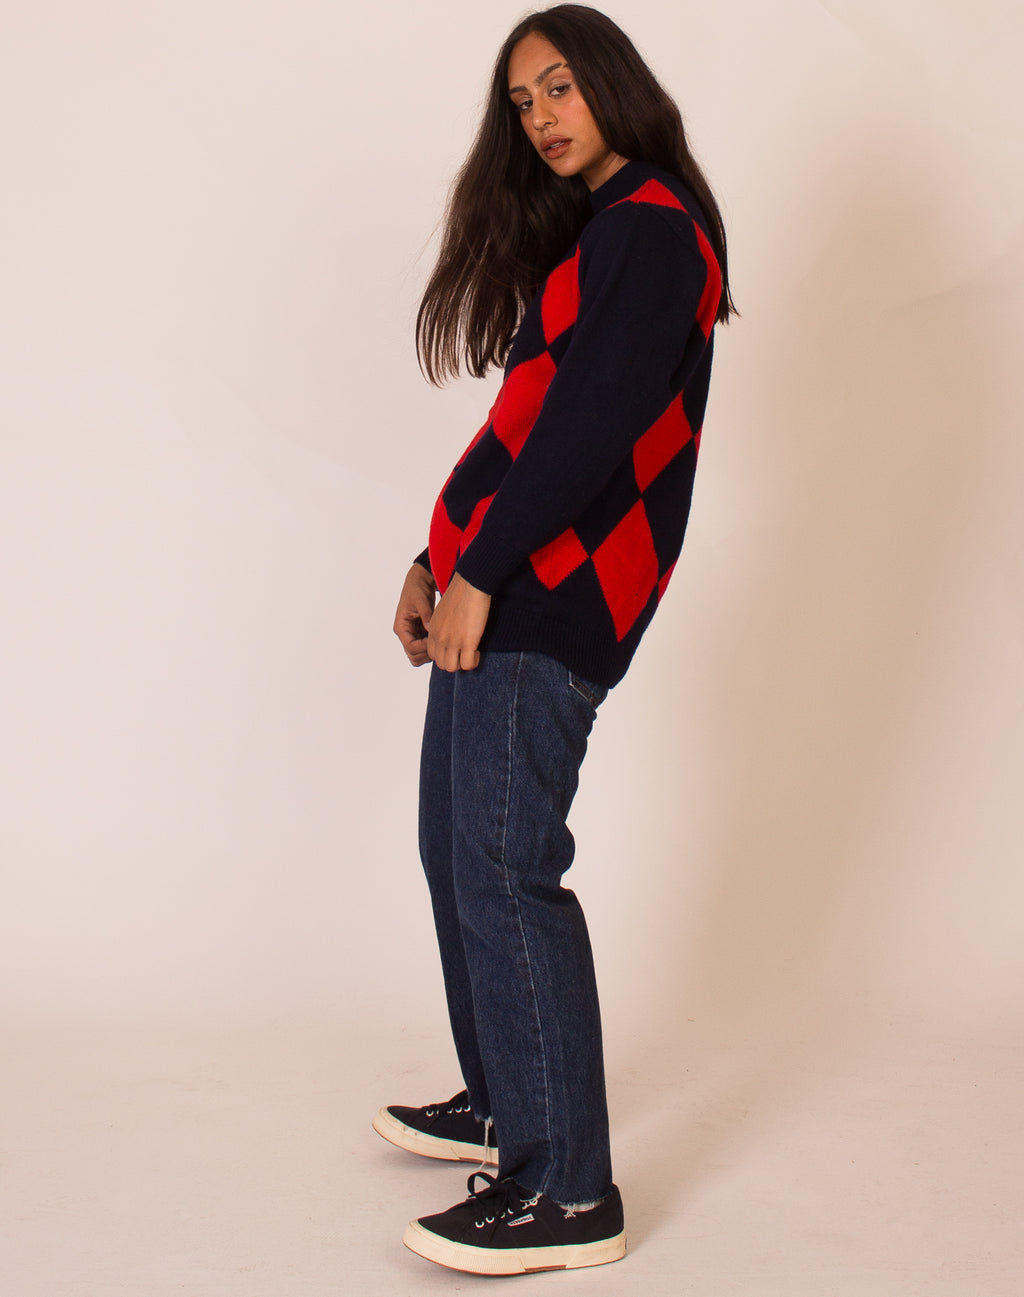 ARGLYE NAVY AND RED SWEATER